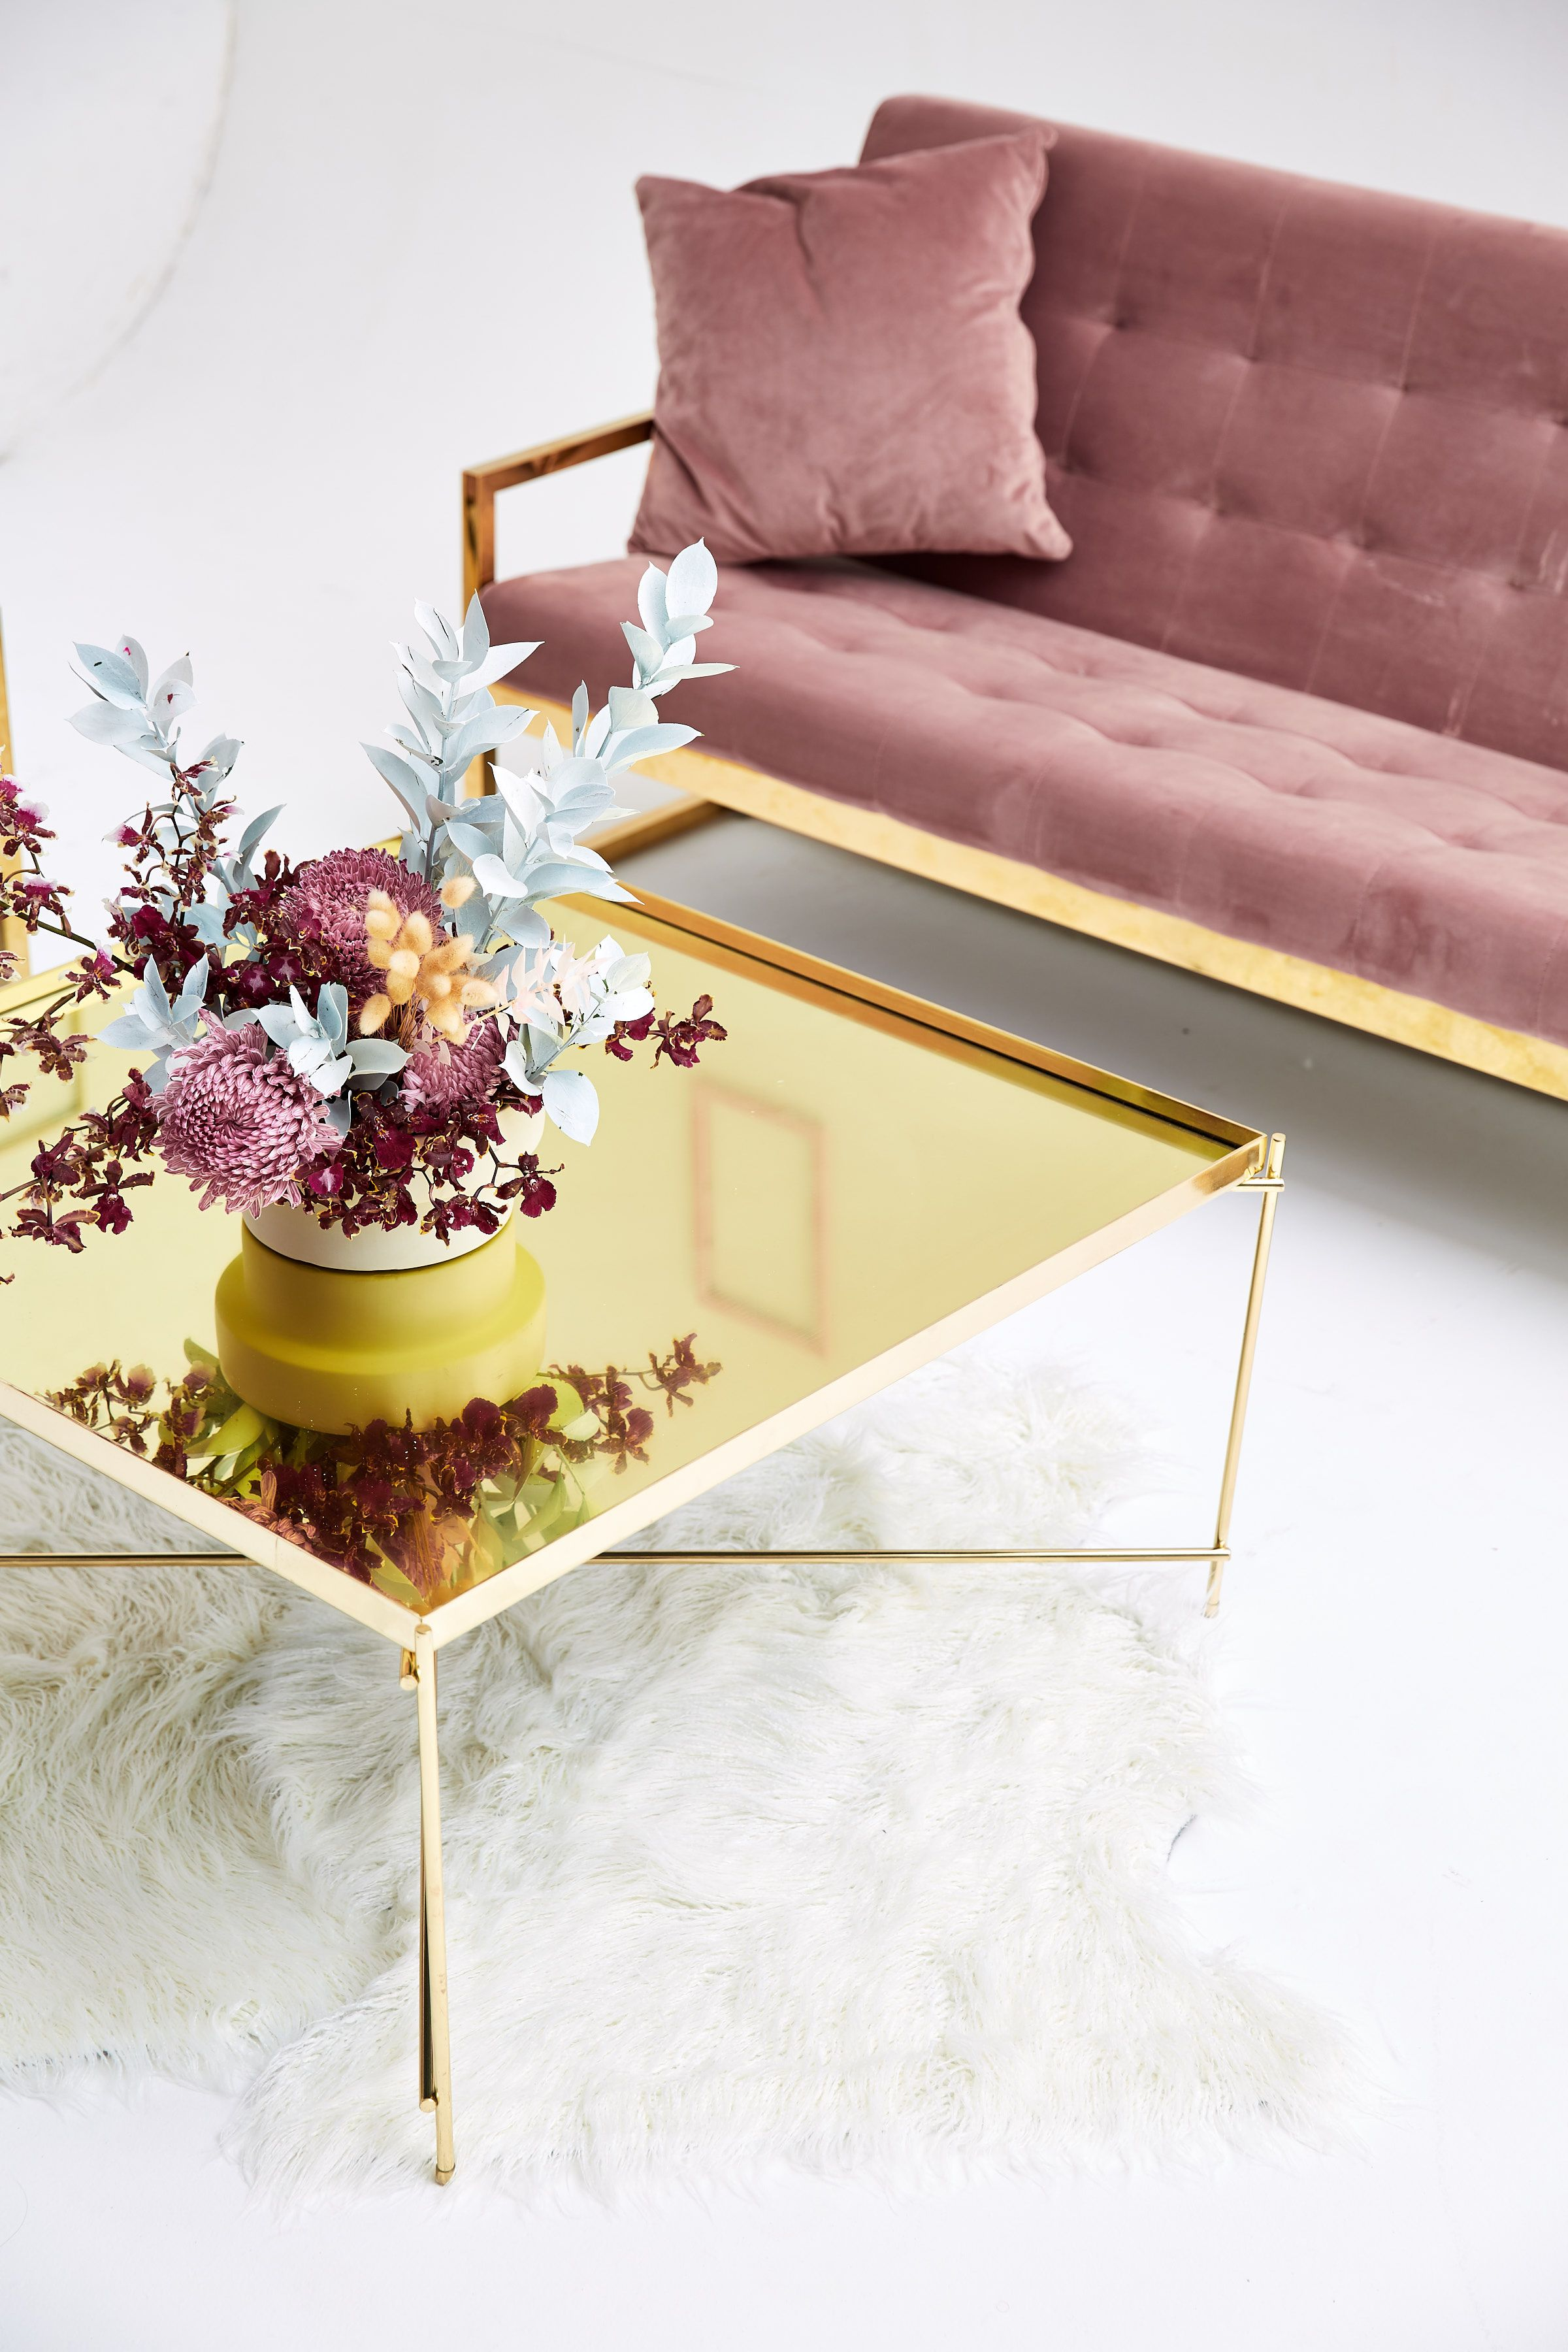 Mirrored Gold Coffee Table Available For Hire For Corporate Events